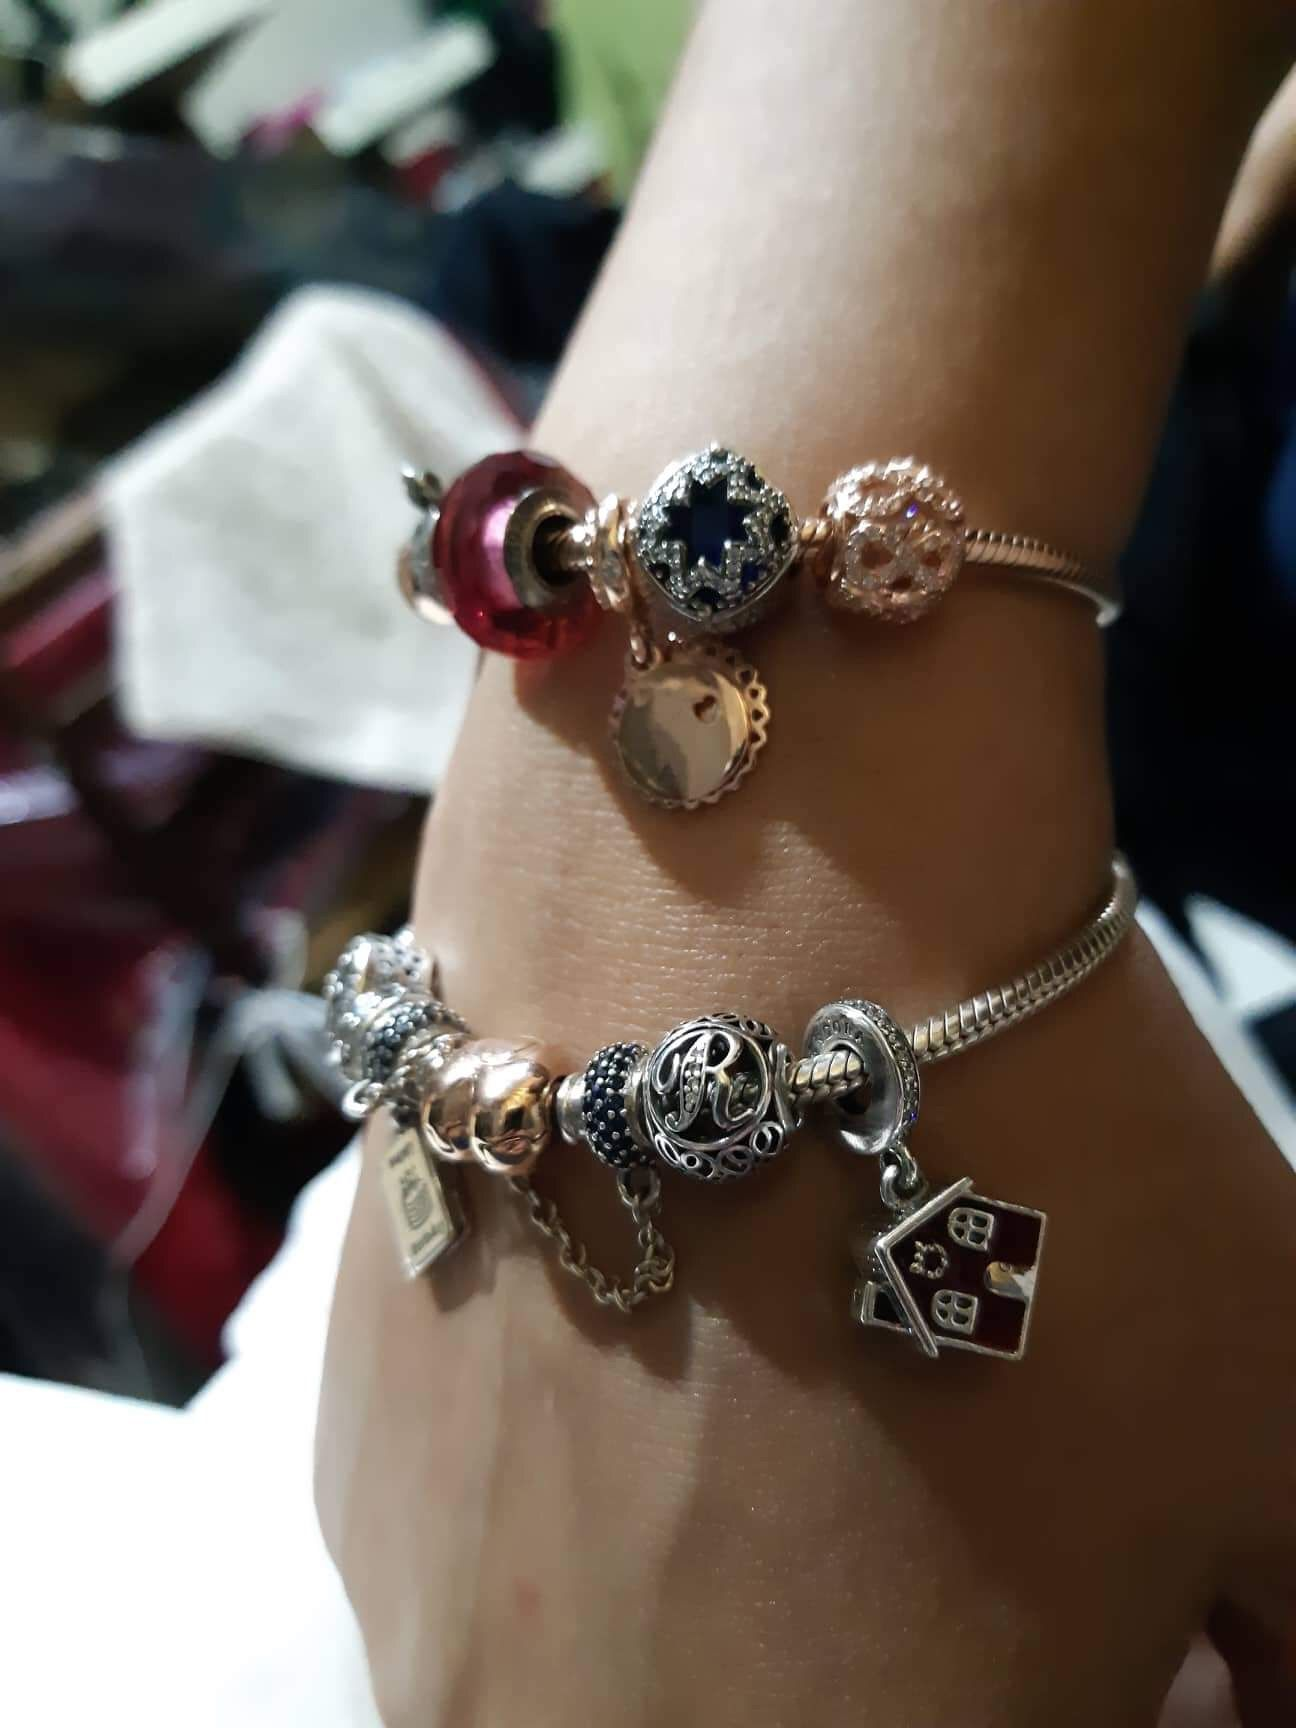 my sister's and mine Pandora, Pandora charm bracelet